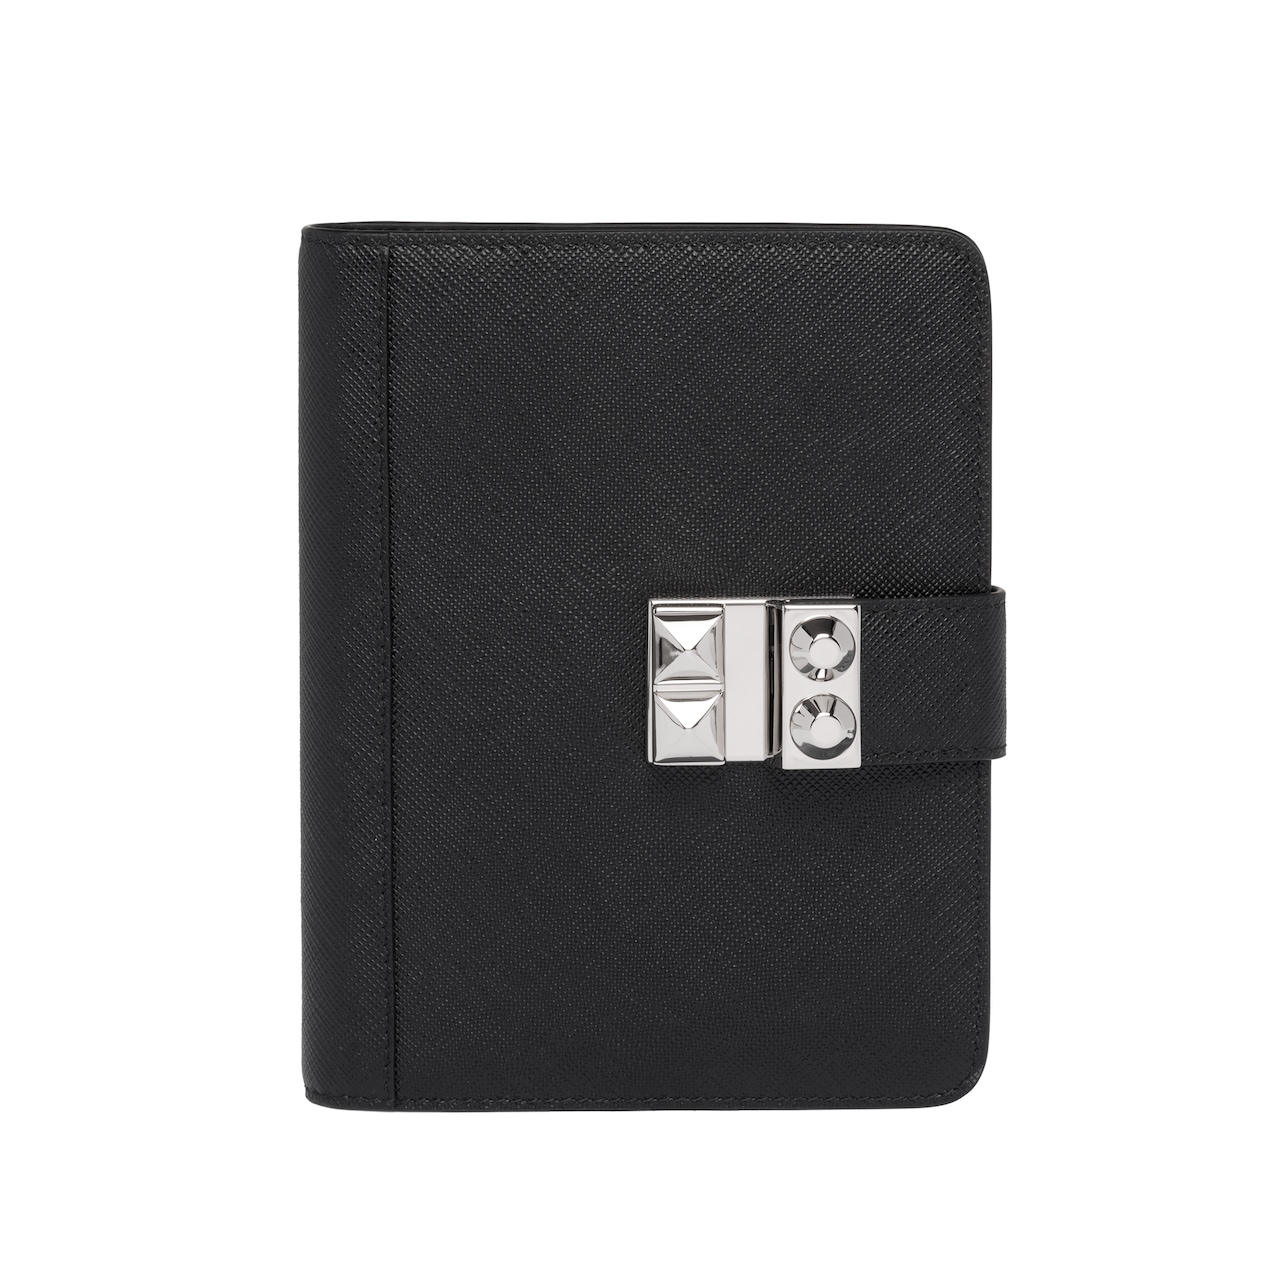 Prada Elektra Saffiano leather pocket diary 1